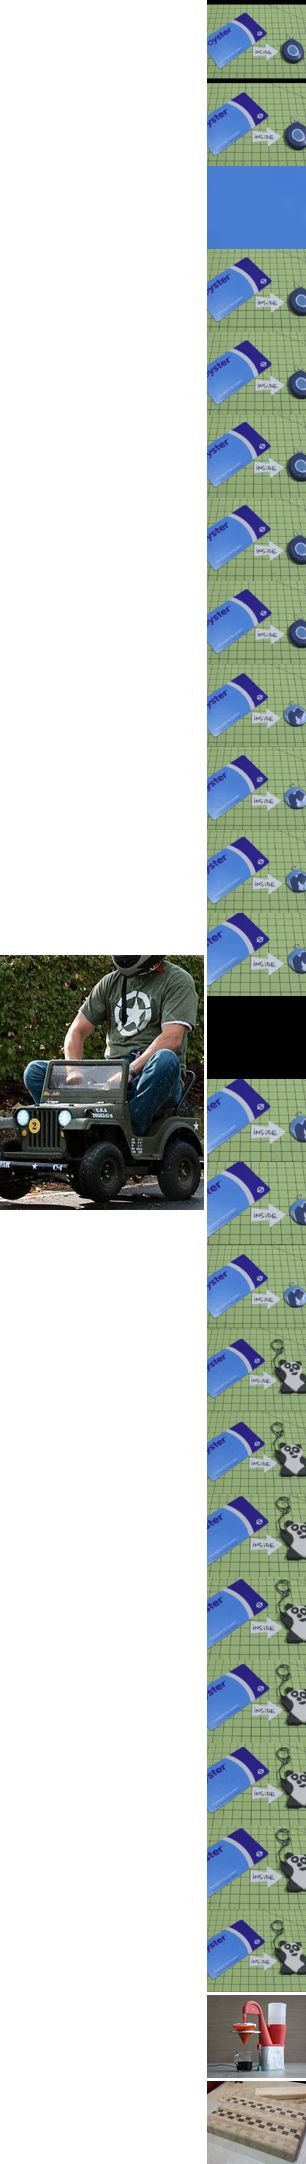 [newsletter] Racing Power Wheels Jeep, Transit Card to Sugru Fob, Electric Coffee Maker